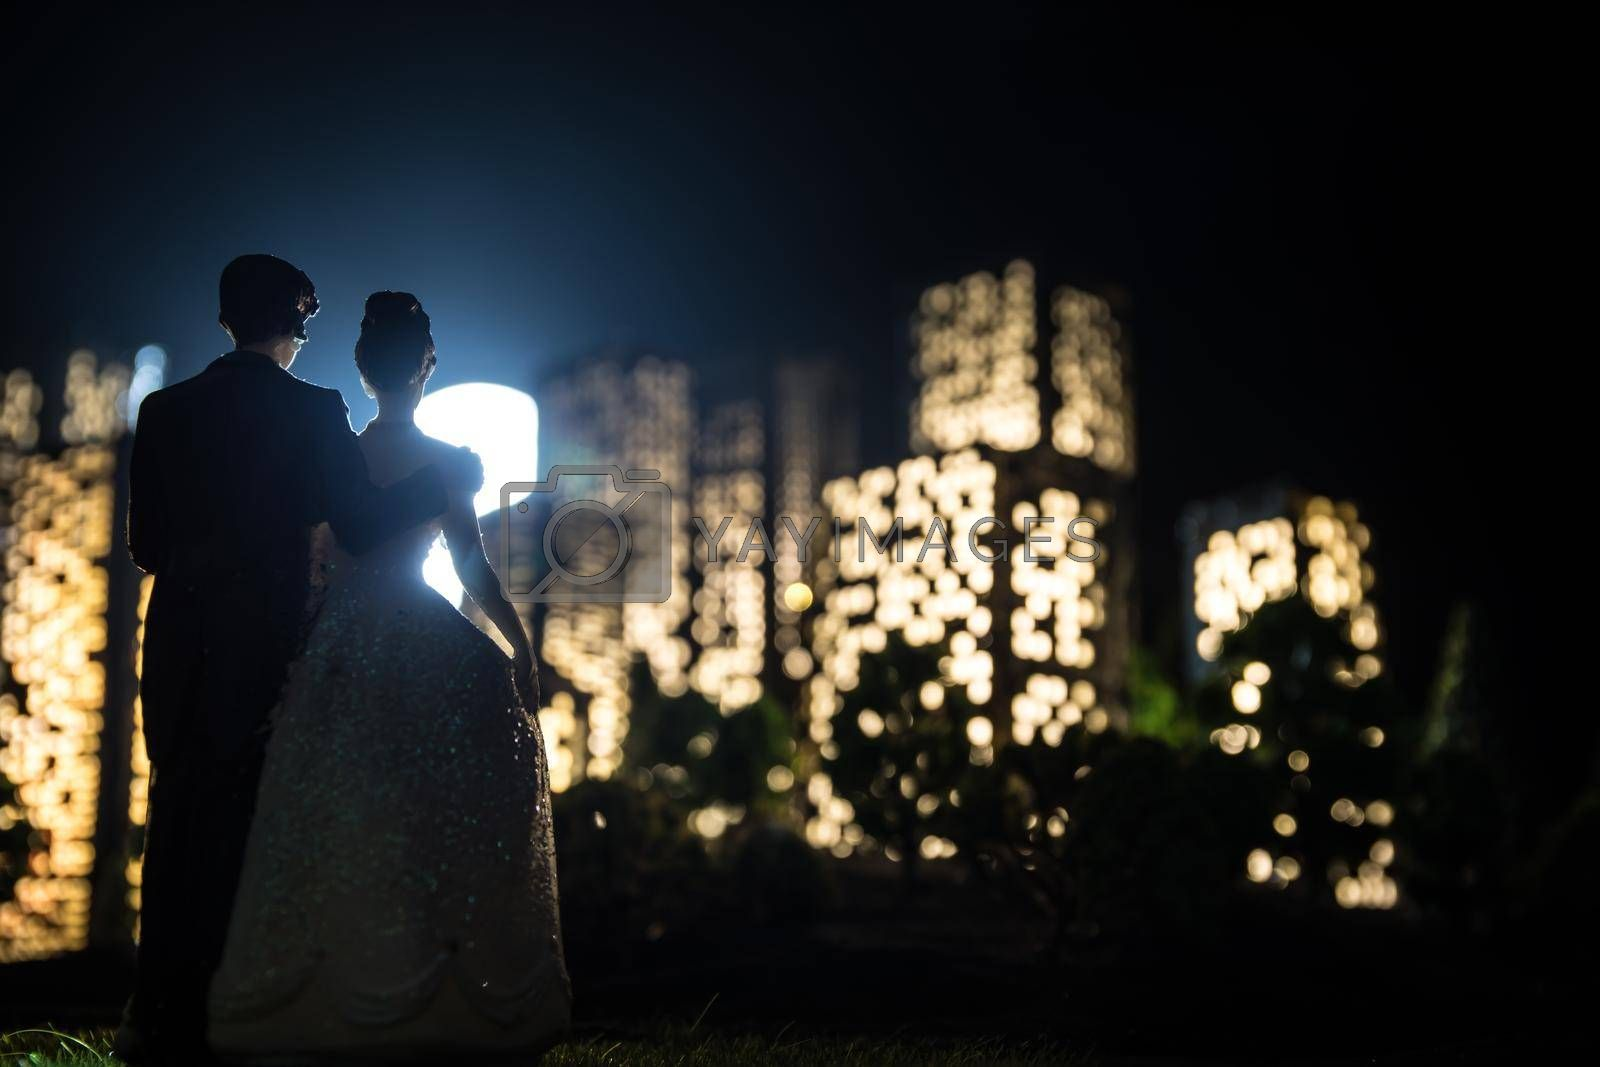 Cartoon style city buildings. Realistic city building miniatures with lights. background. Romantic couple silhouettes standing in from of nigth city in selective focus